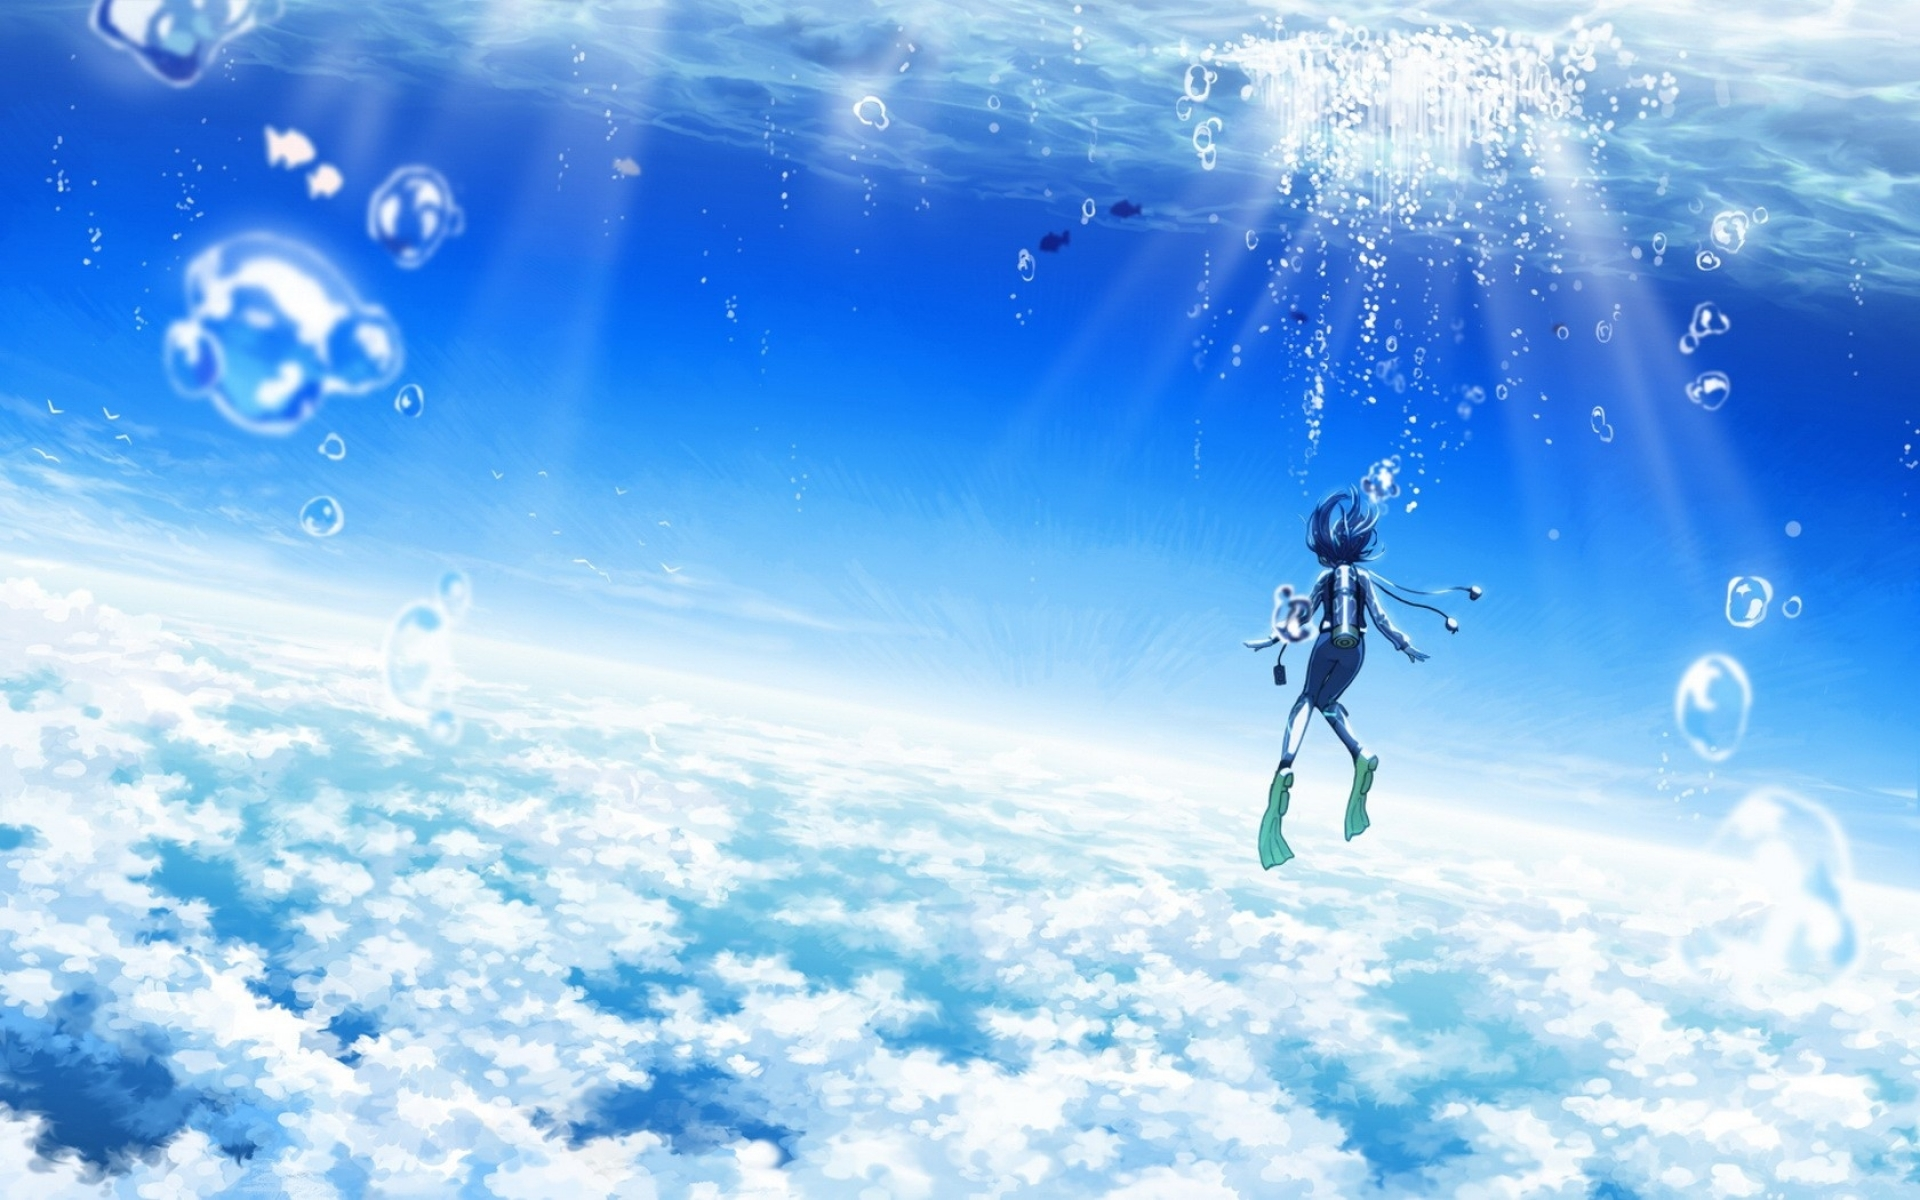 Maouki images 45905 anime scenery blue sky anime scenery ...